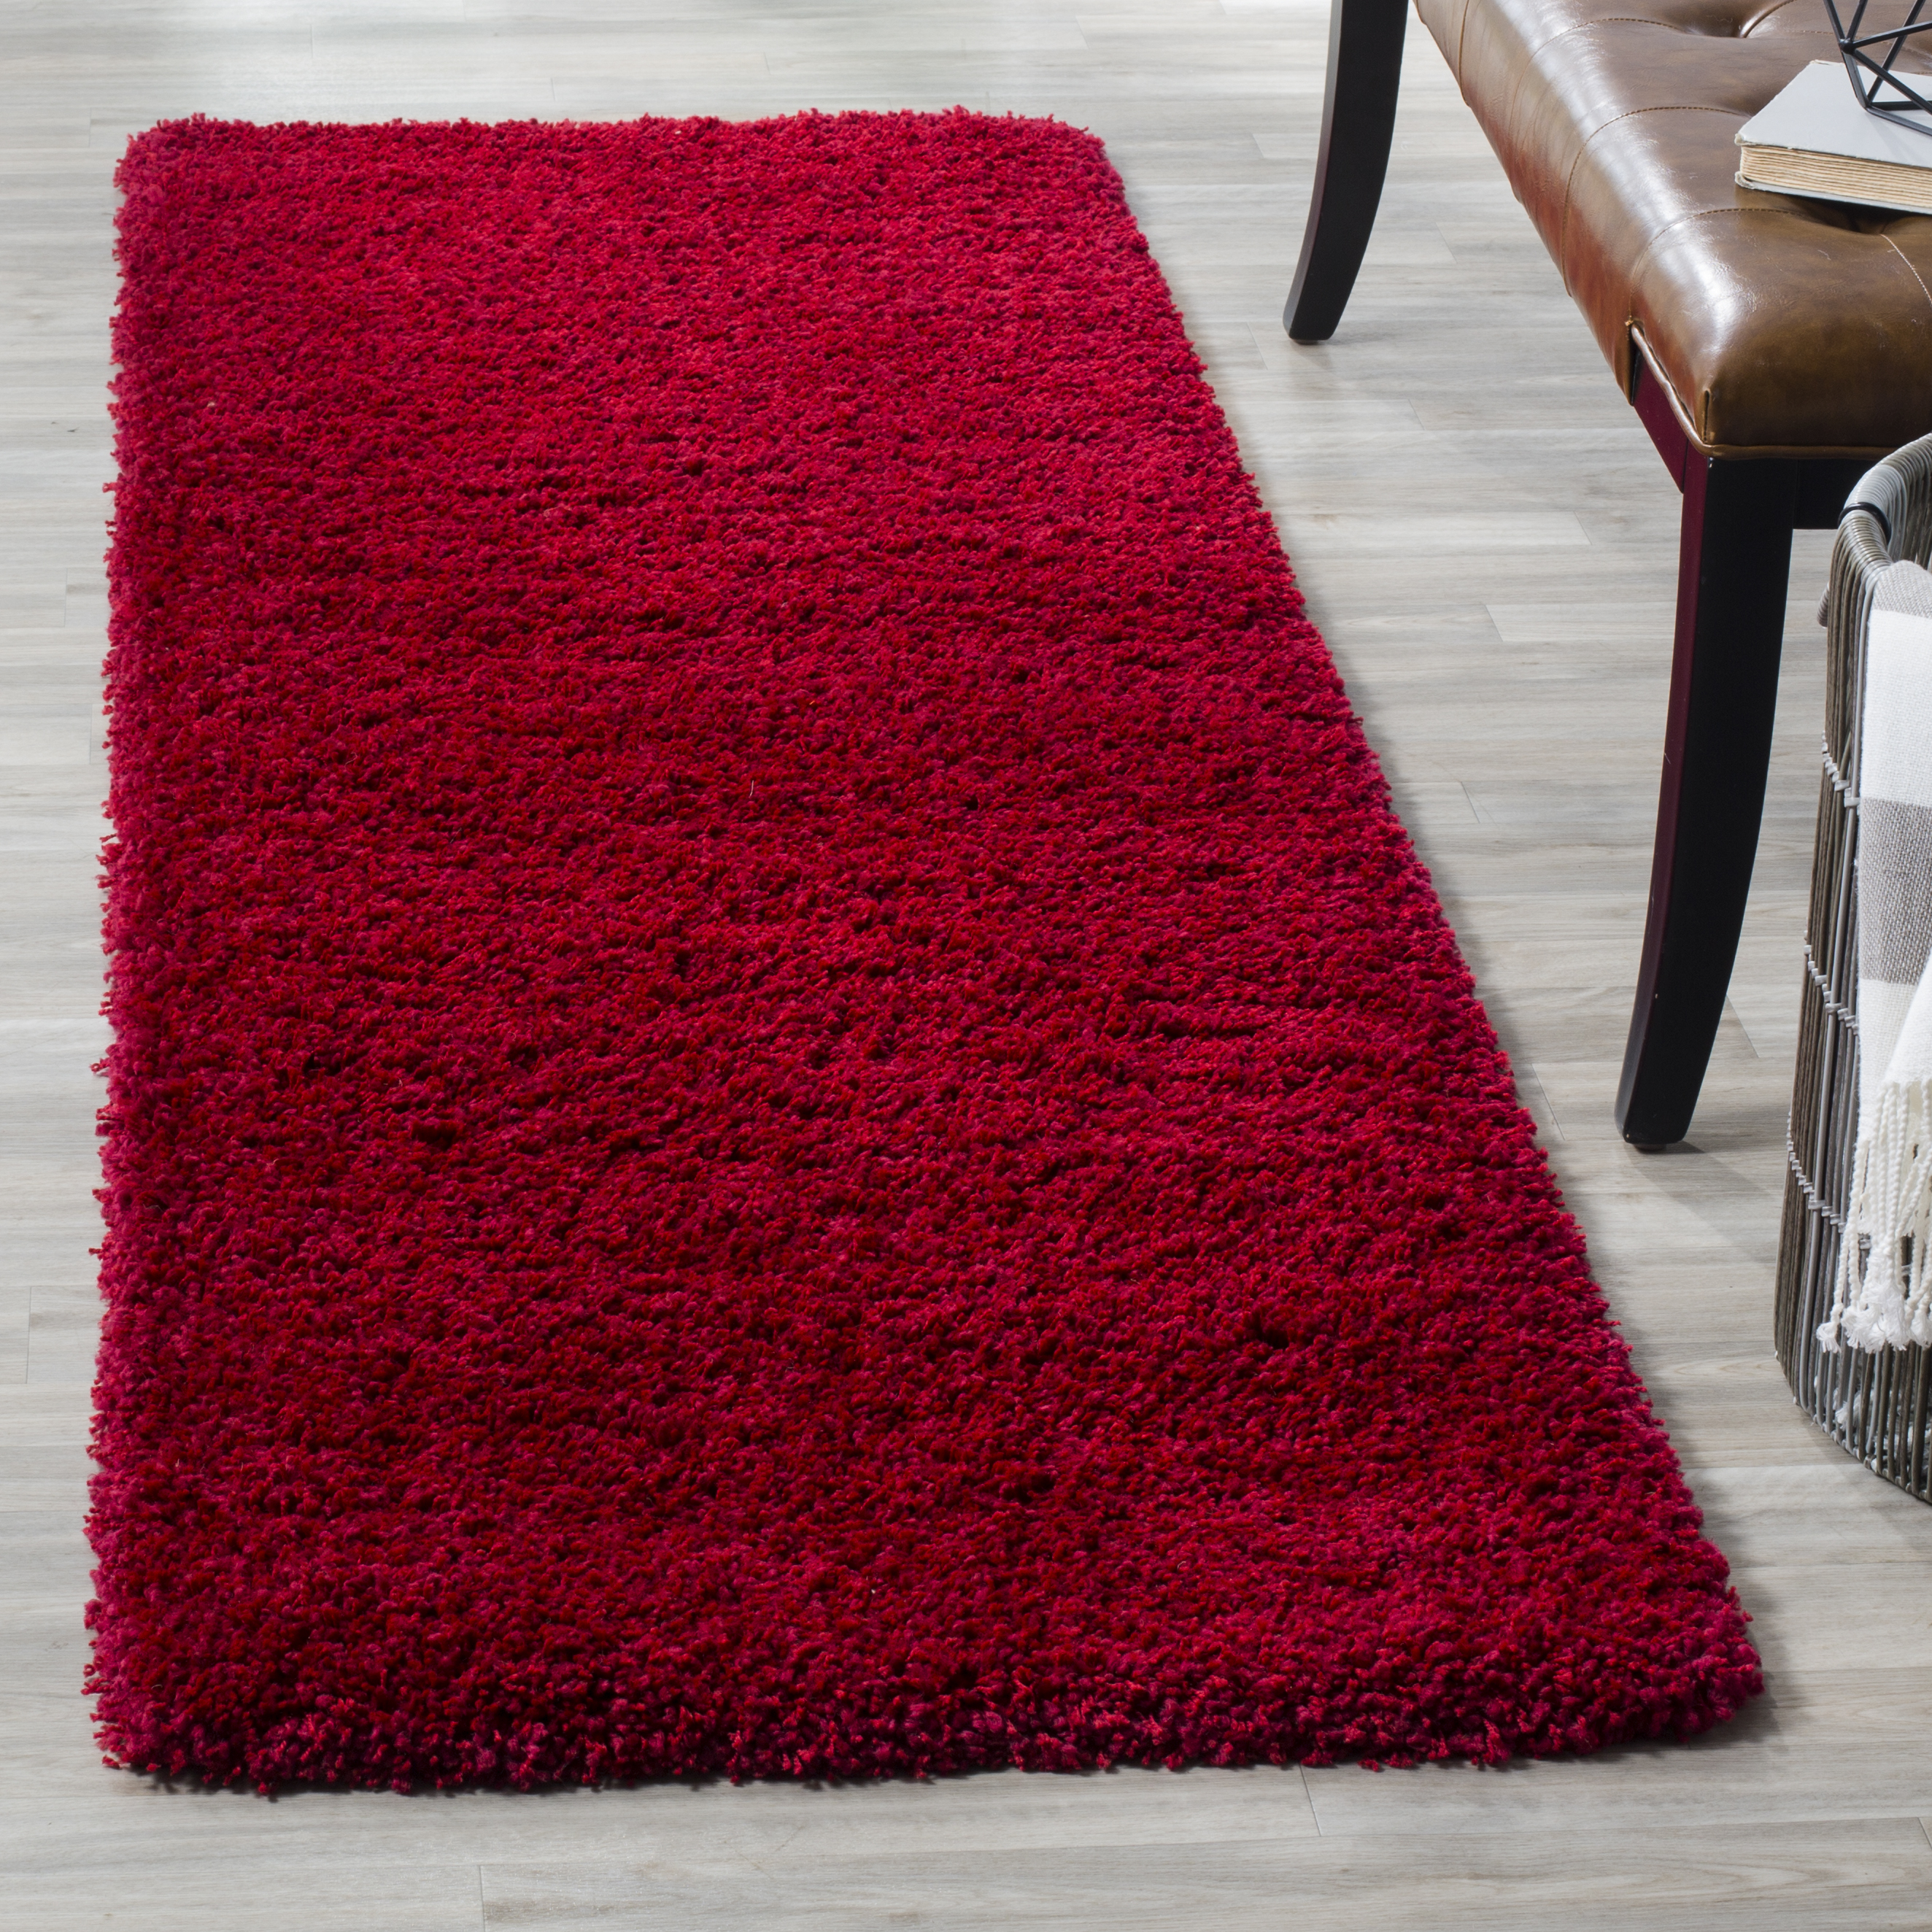 Red Striped Rugs